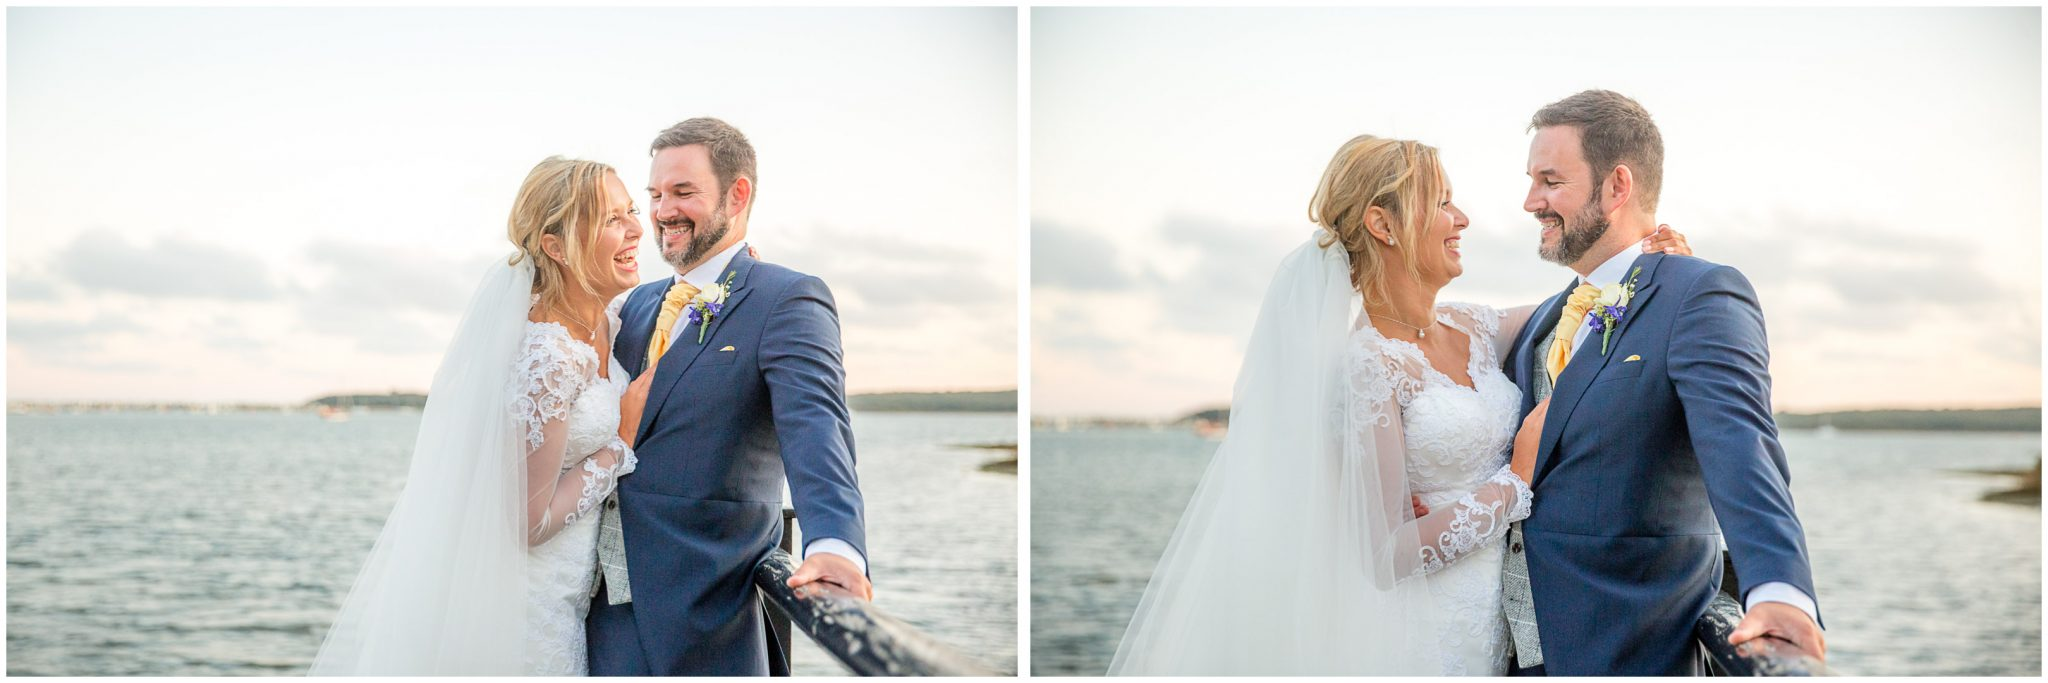 Couple portraits by the waterside